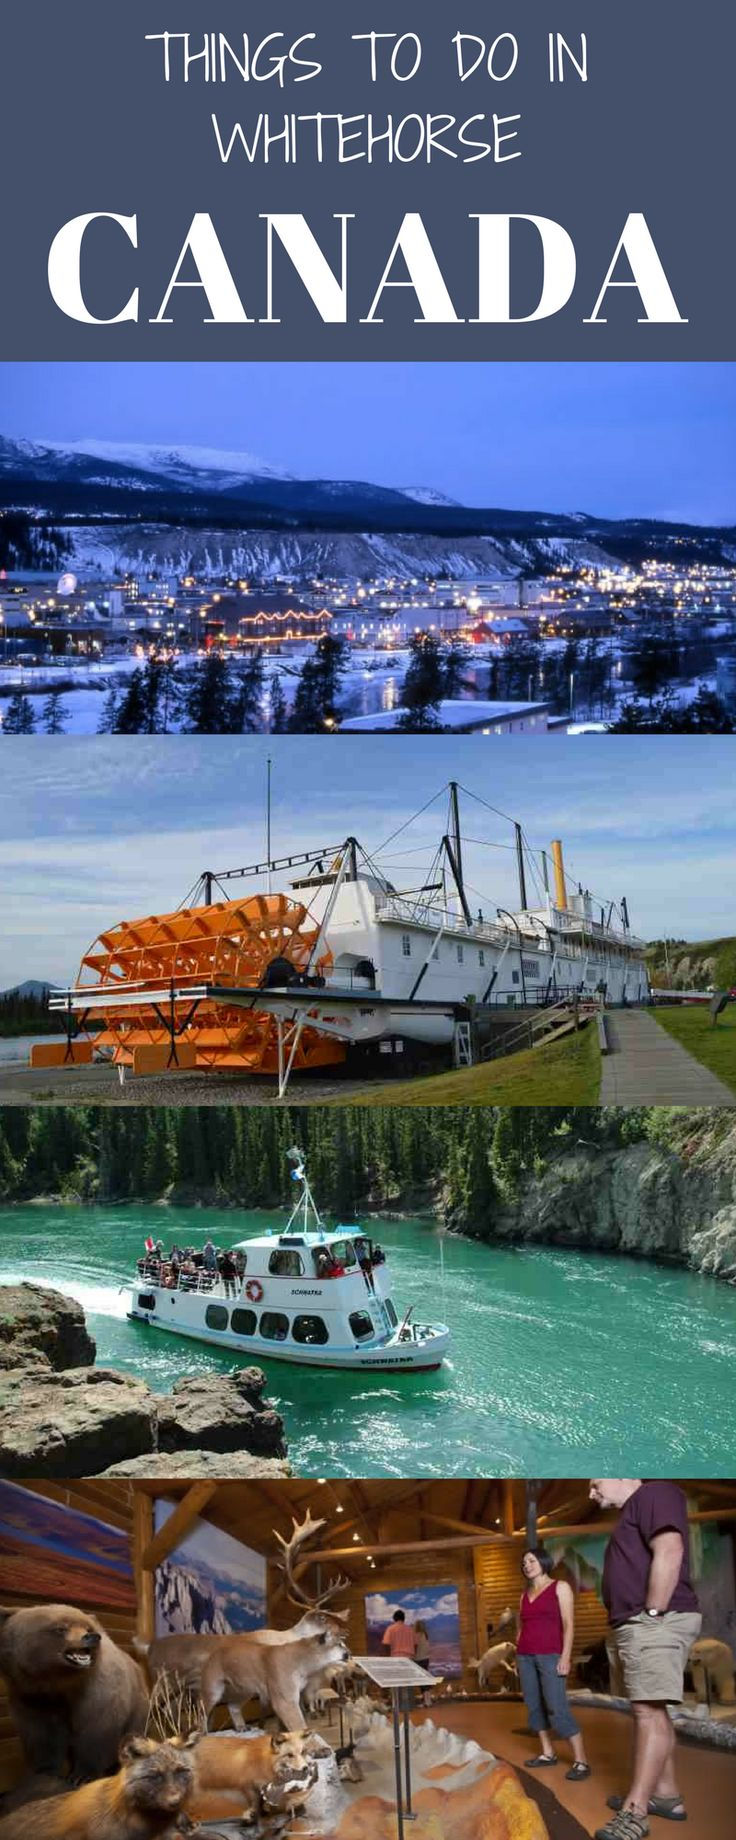 Things to do in whitehorse| Yukon. I hate small towns because once you've seen the cannon in the park there's nothing else to do. – former American comedian, Lenny Bruce.